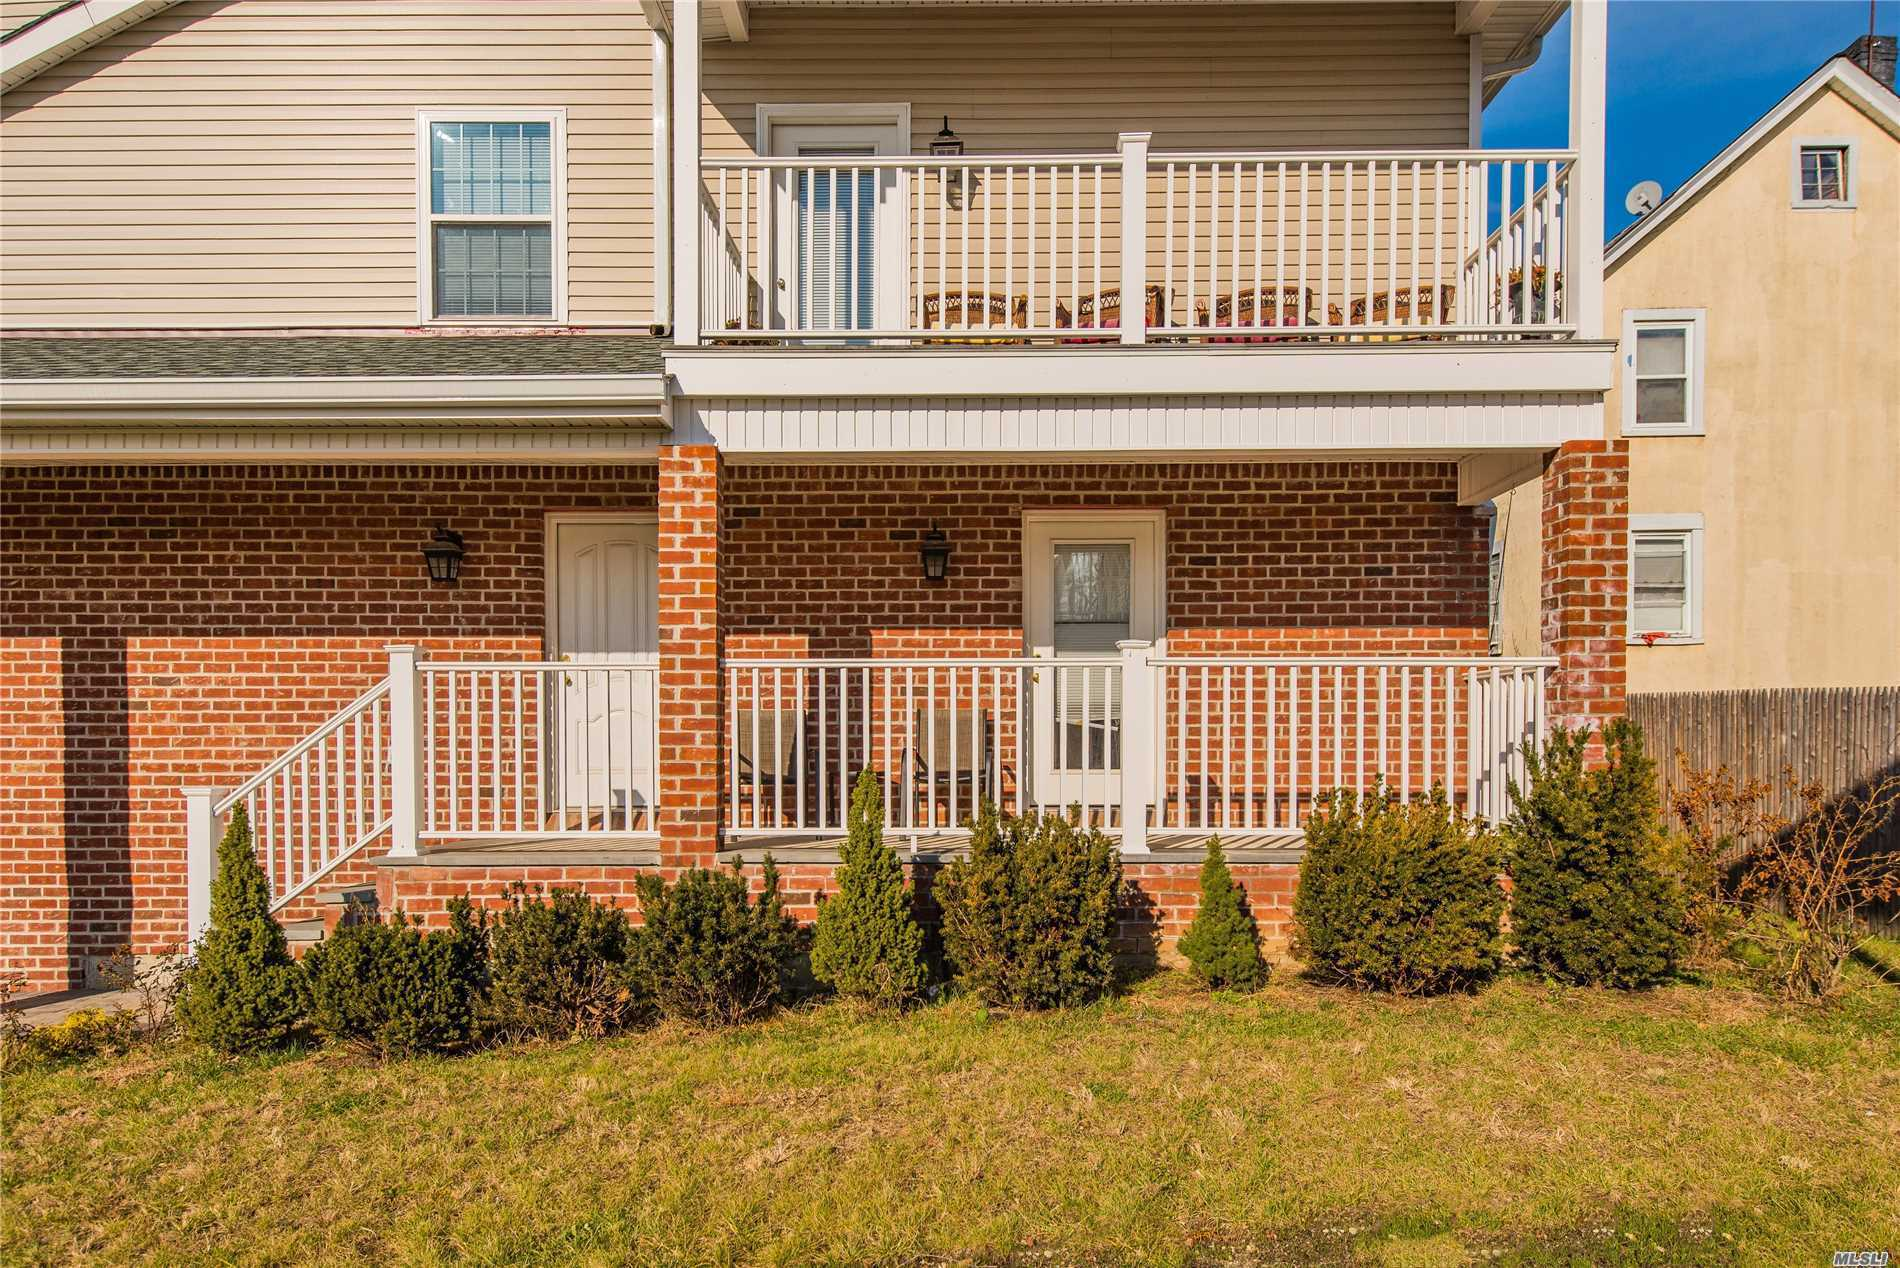 Beautiful Sunlit Unit With An Open Floor Plan. Tile Floors, Stainless Steel Appliances, Washer/Dryer, Covered Porch And Garage. Close To Beaches, Parks, Shopping, Dining, And Transportation. Pets Up To 30Lbs Permitted With $50 Extra A Month. Pictures Not Actual Unit. $35 Ntn Application Fee.